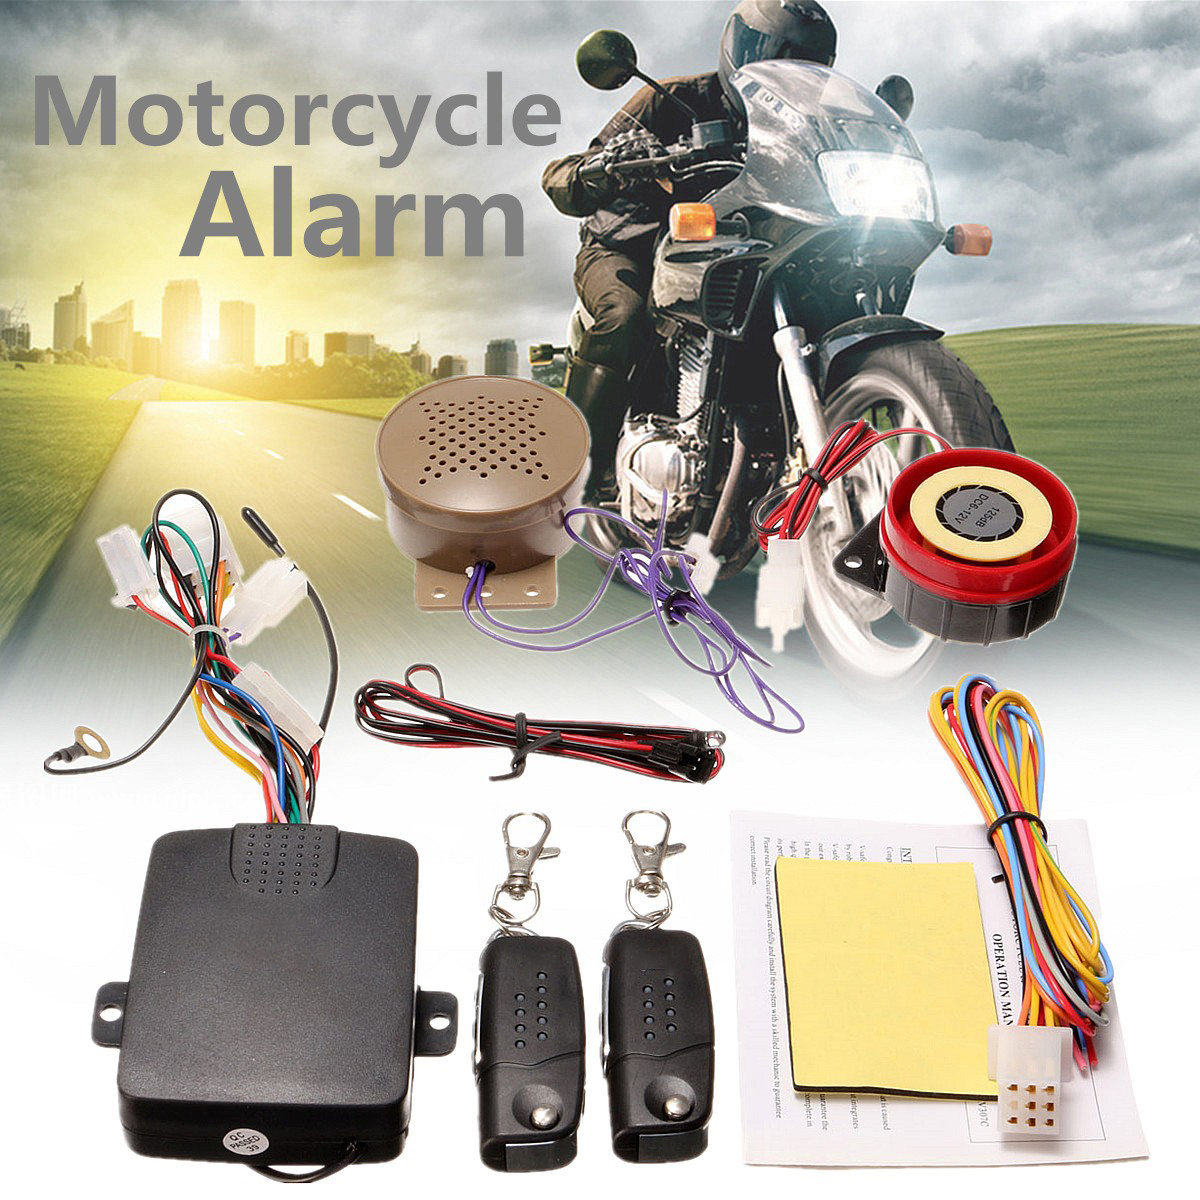 200M Motorcycle Alarm System Lock 2 Remote Controllers Talkin Voice Moto Bike Scooter Anti-theft Security Alarm Horn Speaker